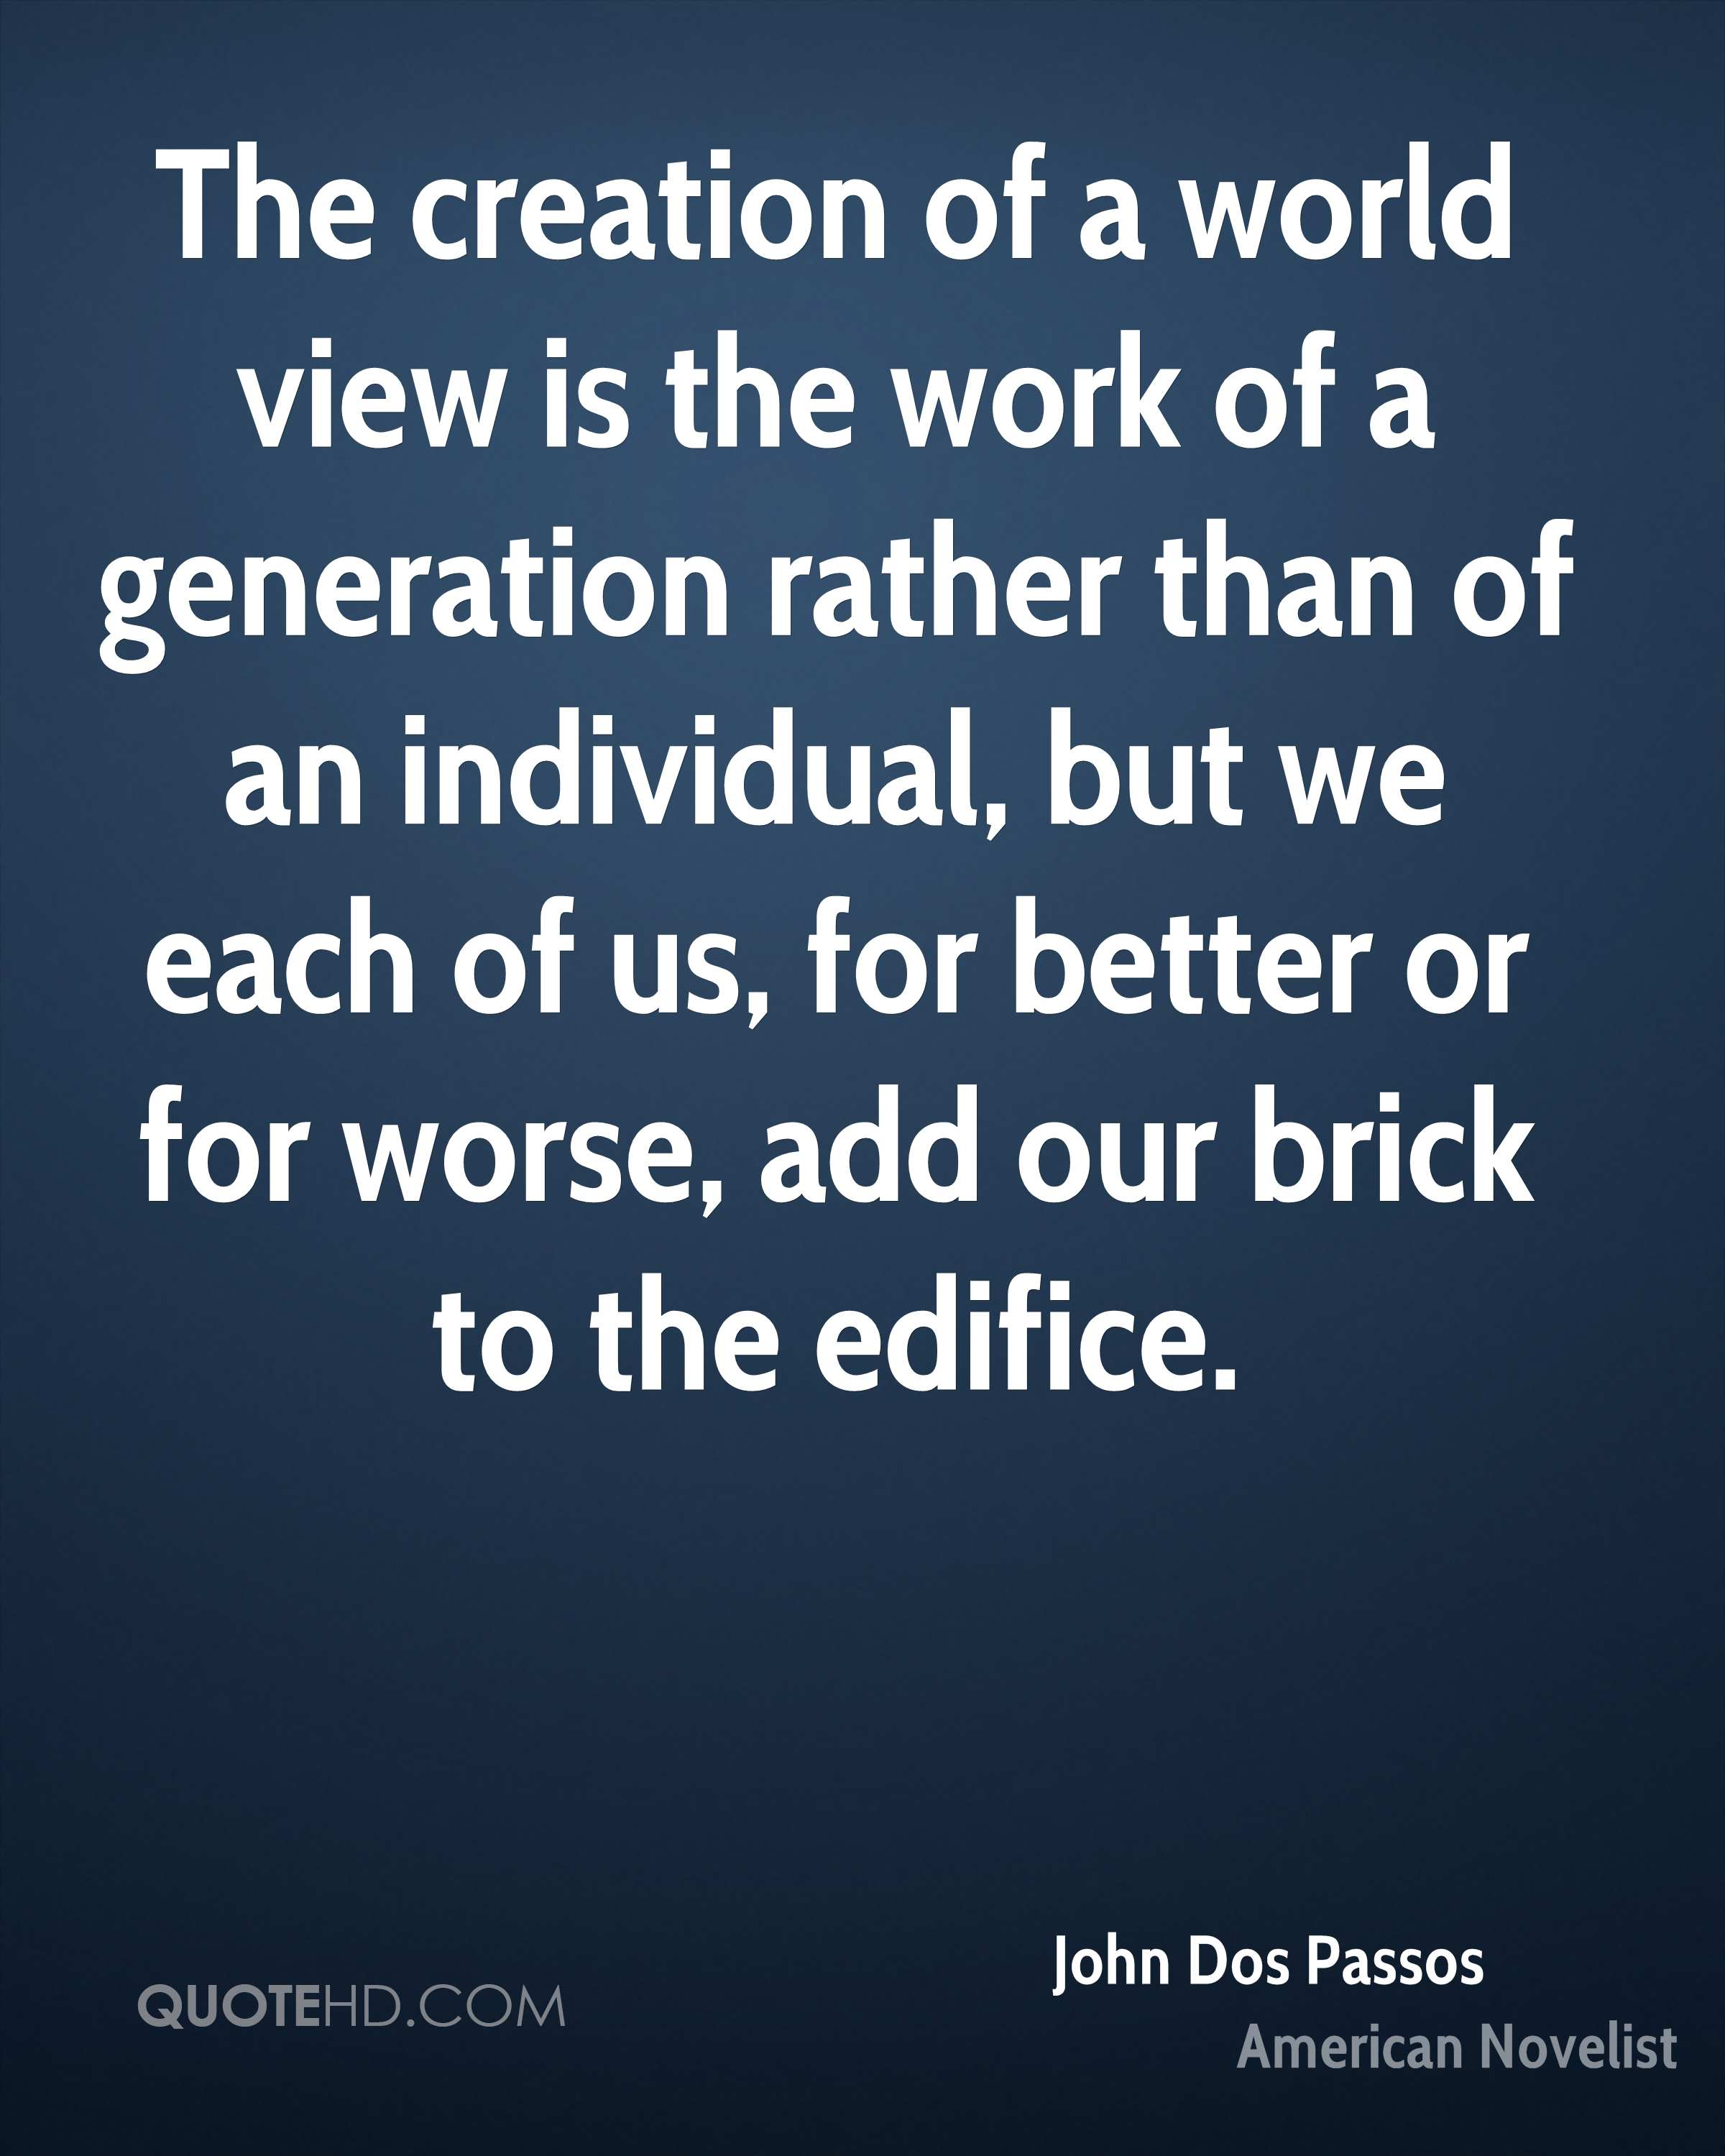 The creation of a world view is the work of a generation rather than of an individual, but we each of us, for better or for worse, add our brick to the edifice.